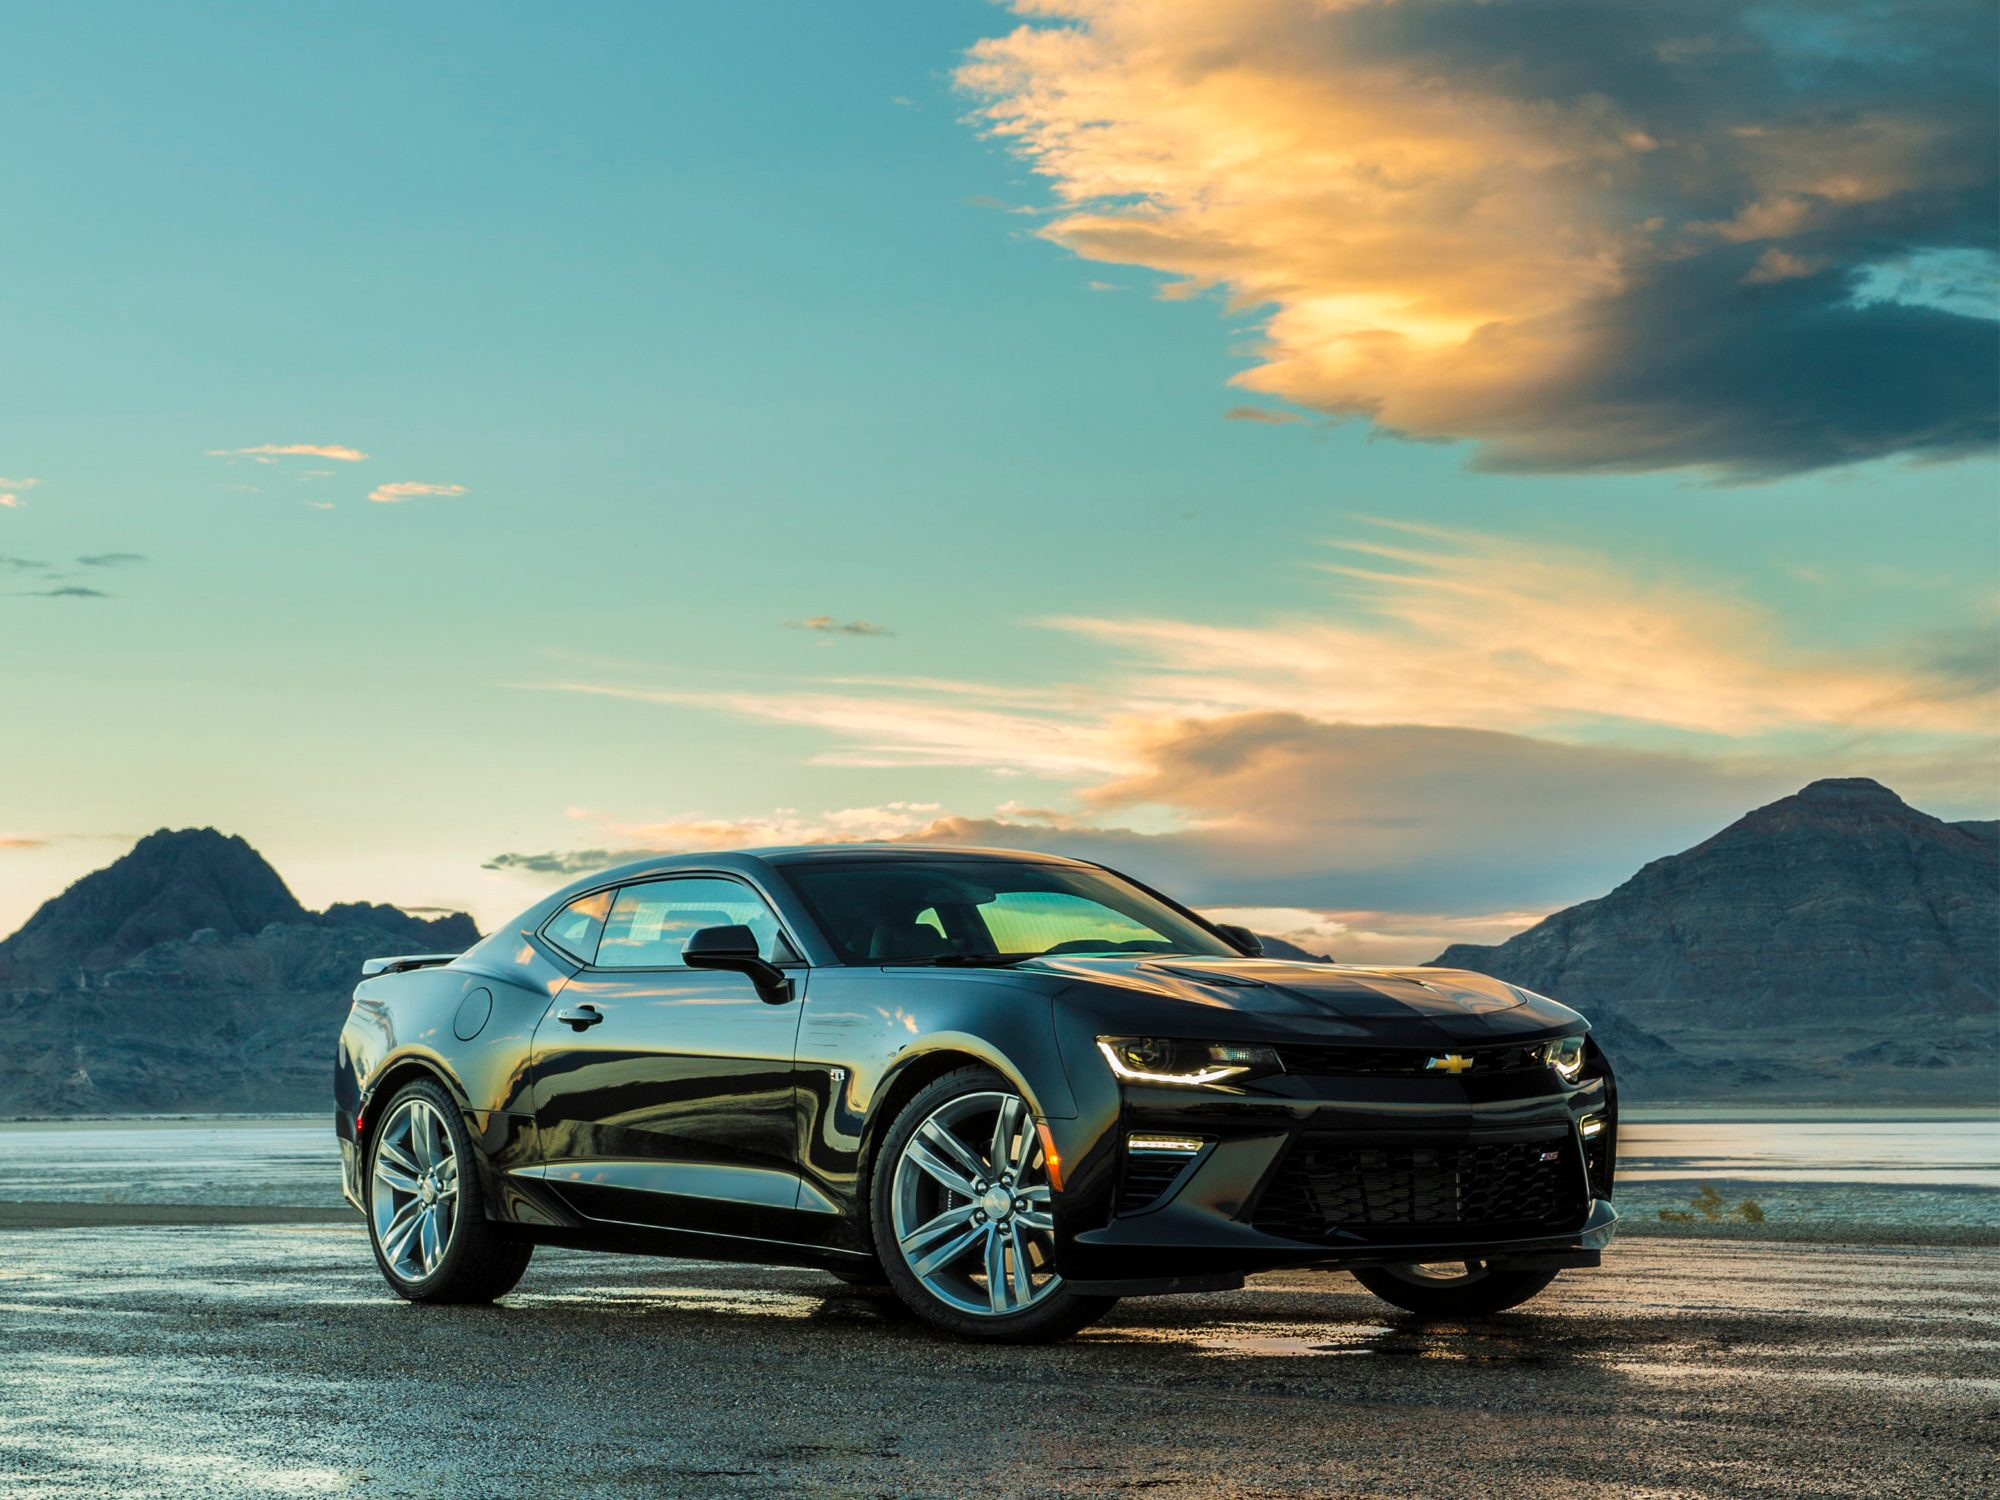 3. The 2016 Chevrolet Camaro is more comfortable.